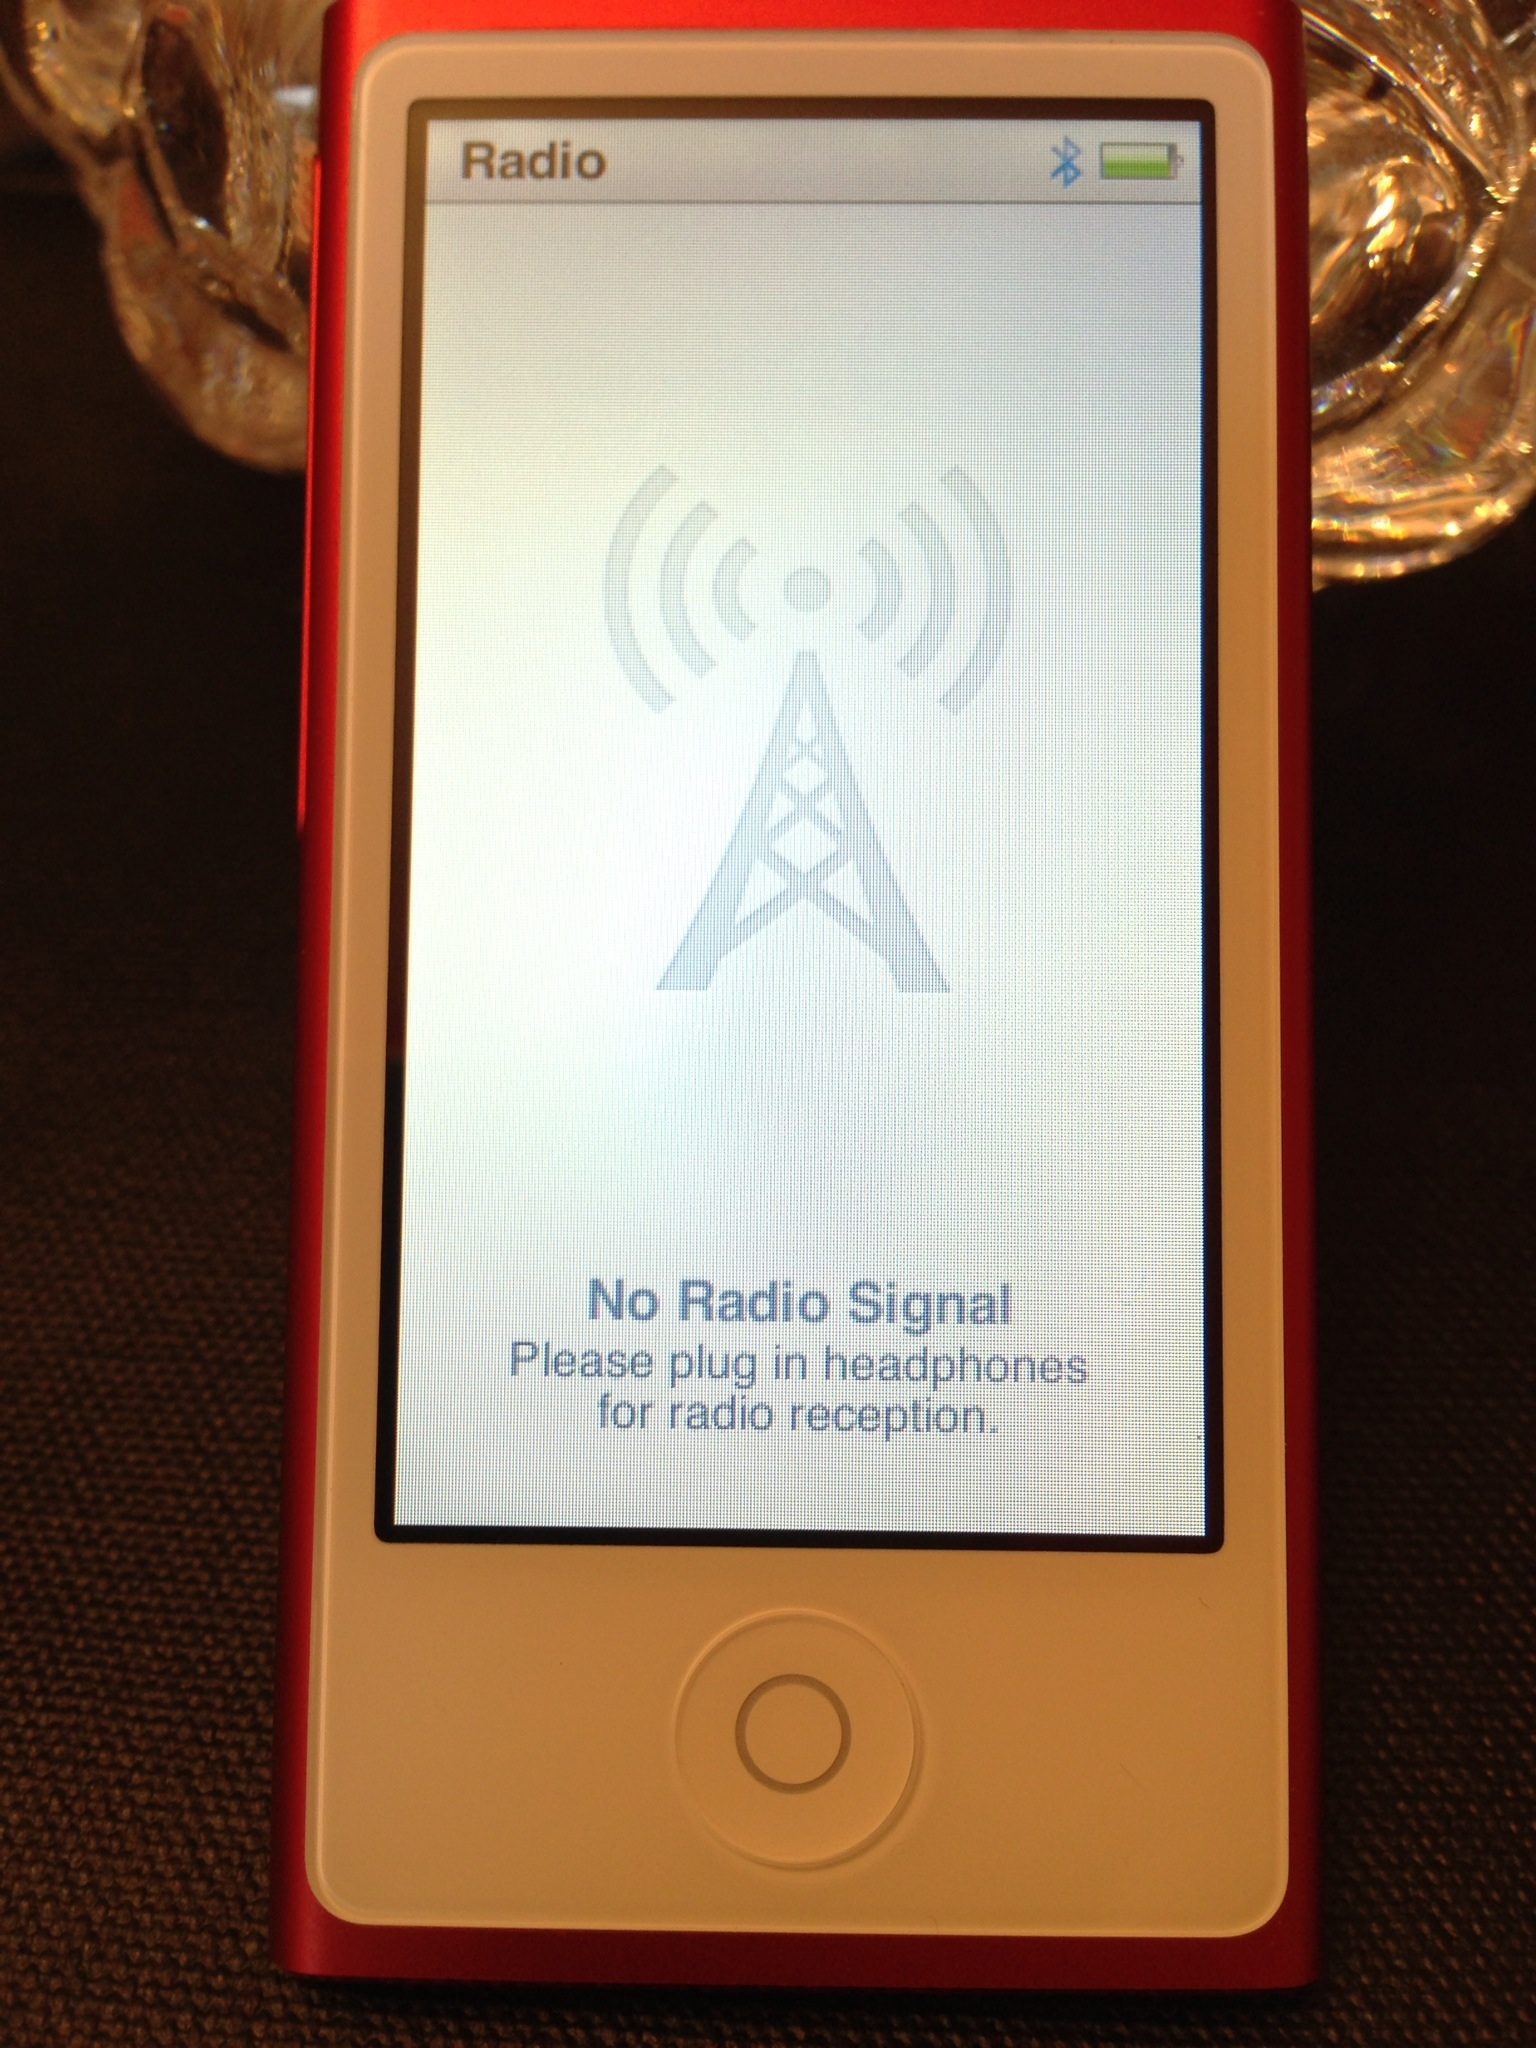 Bluetooth is a dud on the new Apple iPod Nano 7th generation. :-(